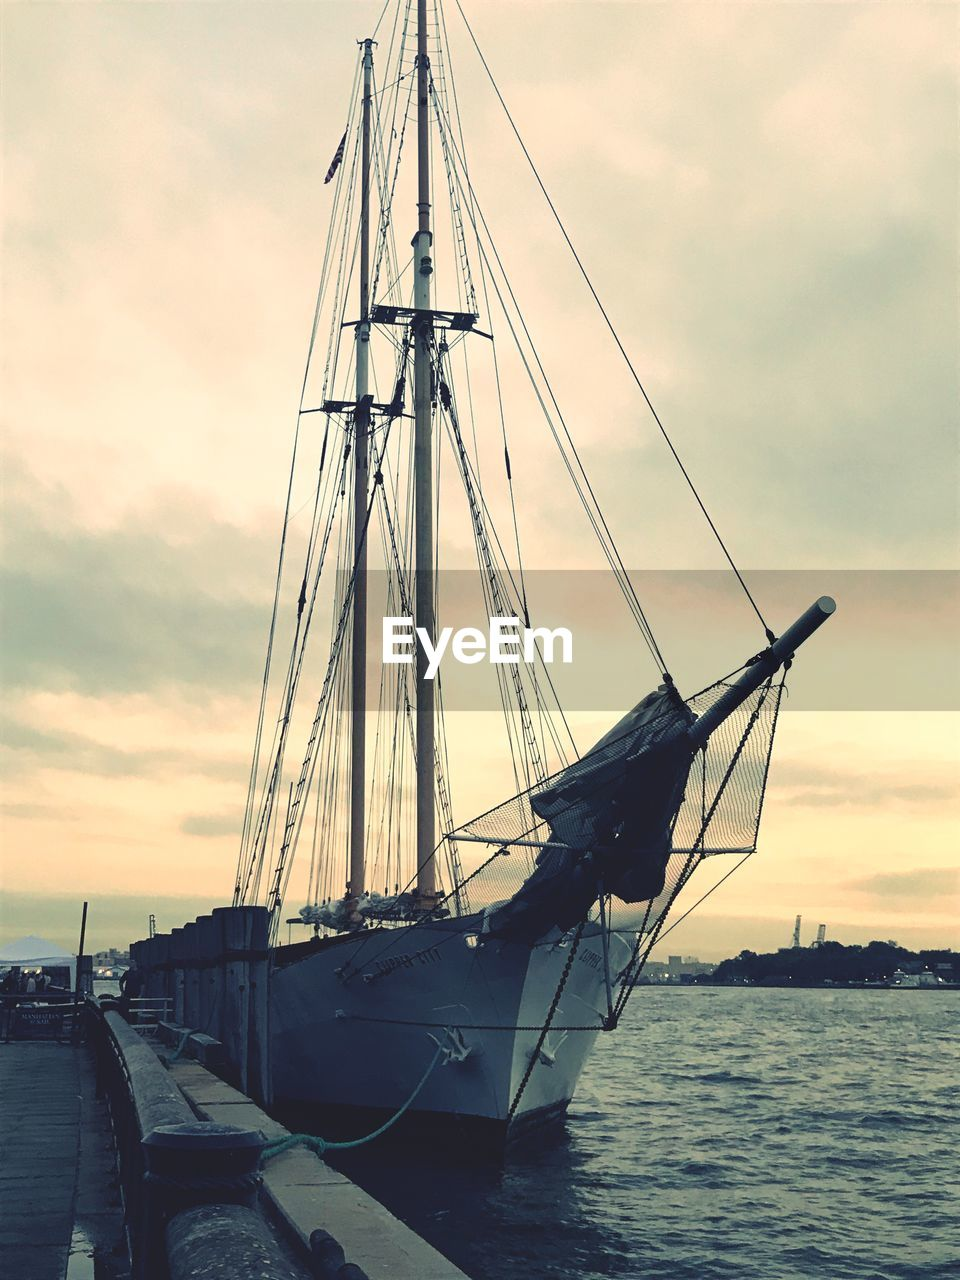 nautical vessel, transportation, mode of transport, sky, cloud - sky, mast, water, sea, sunset, boat, sailboat, moored, outdoors, nature, no people, scenics, beauty in nature, tall ship, travel destinations, harbor, sailing ship, sailing, day